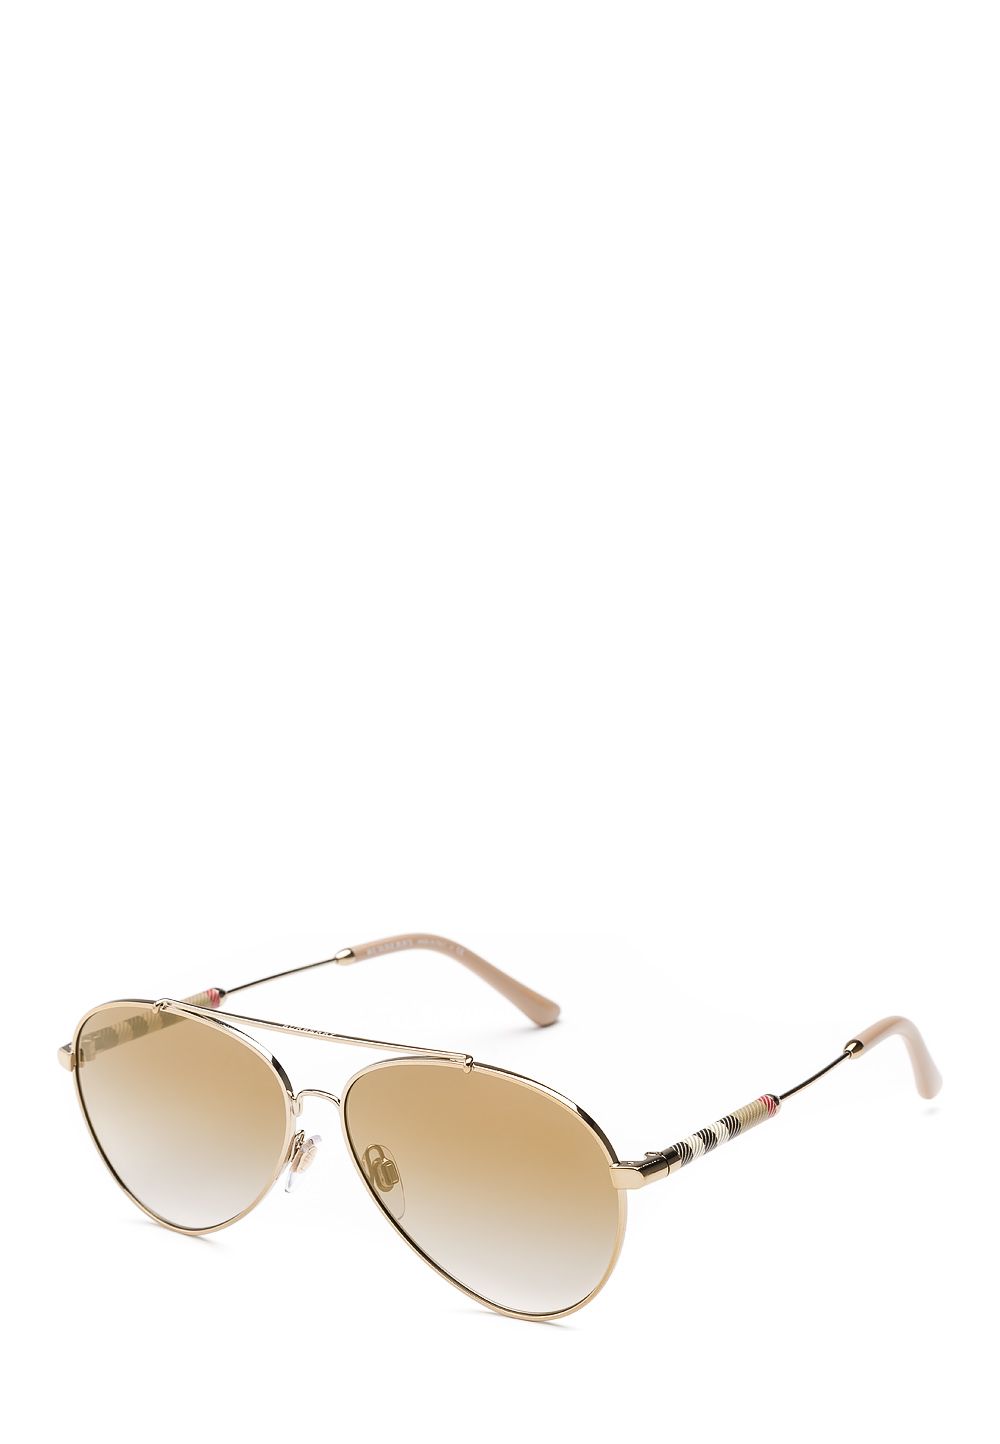 Sonnenbrille B3092Q 1145/6E, UV 400, golden